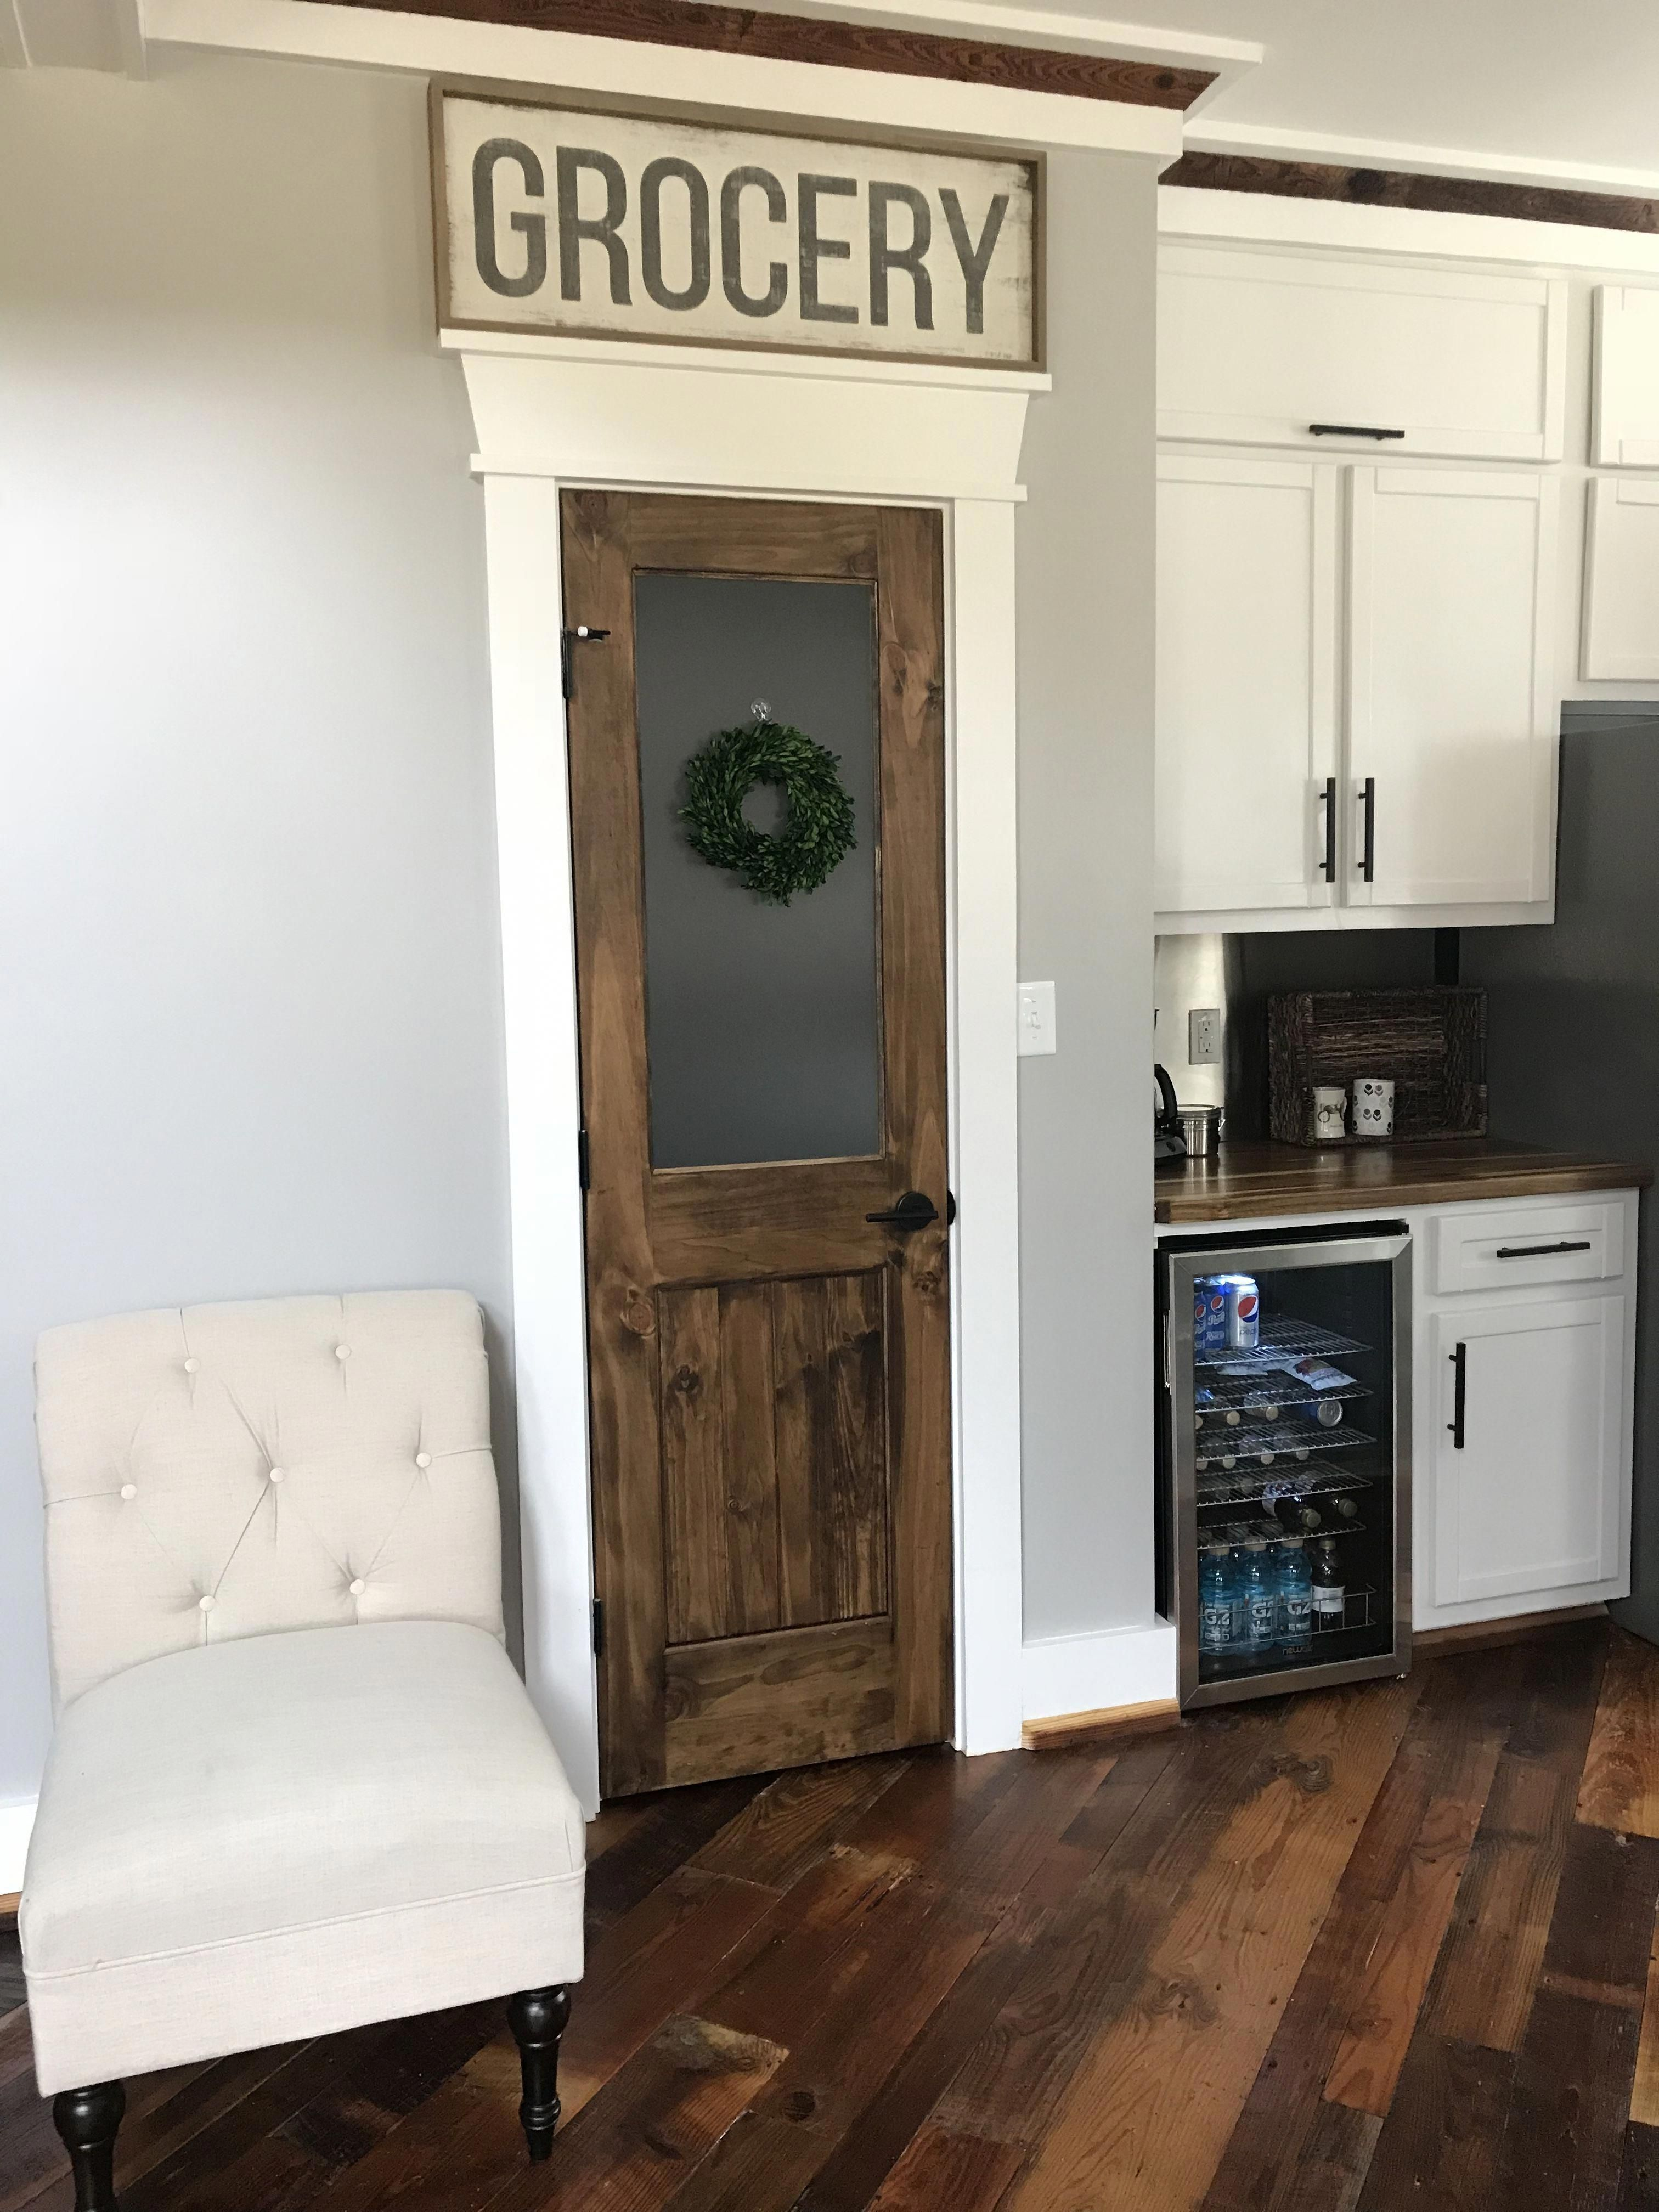 F A R M H O U S E Rustic Pantry Door With Frosted Glass Pane Reclaimed Wood Flooring And Acacia Count Kitchen Pantry Doors Rustic Pantry Door Rustic Pantry